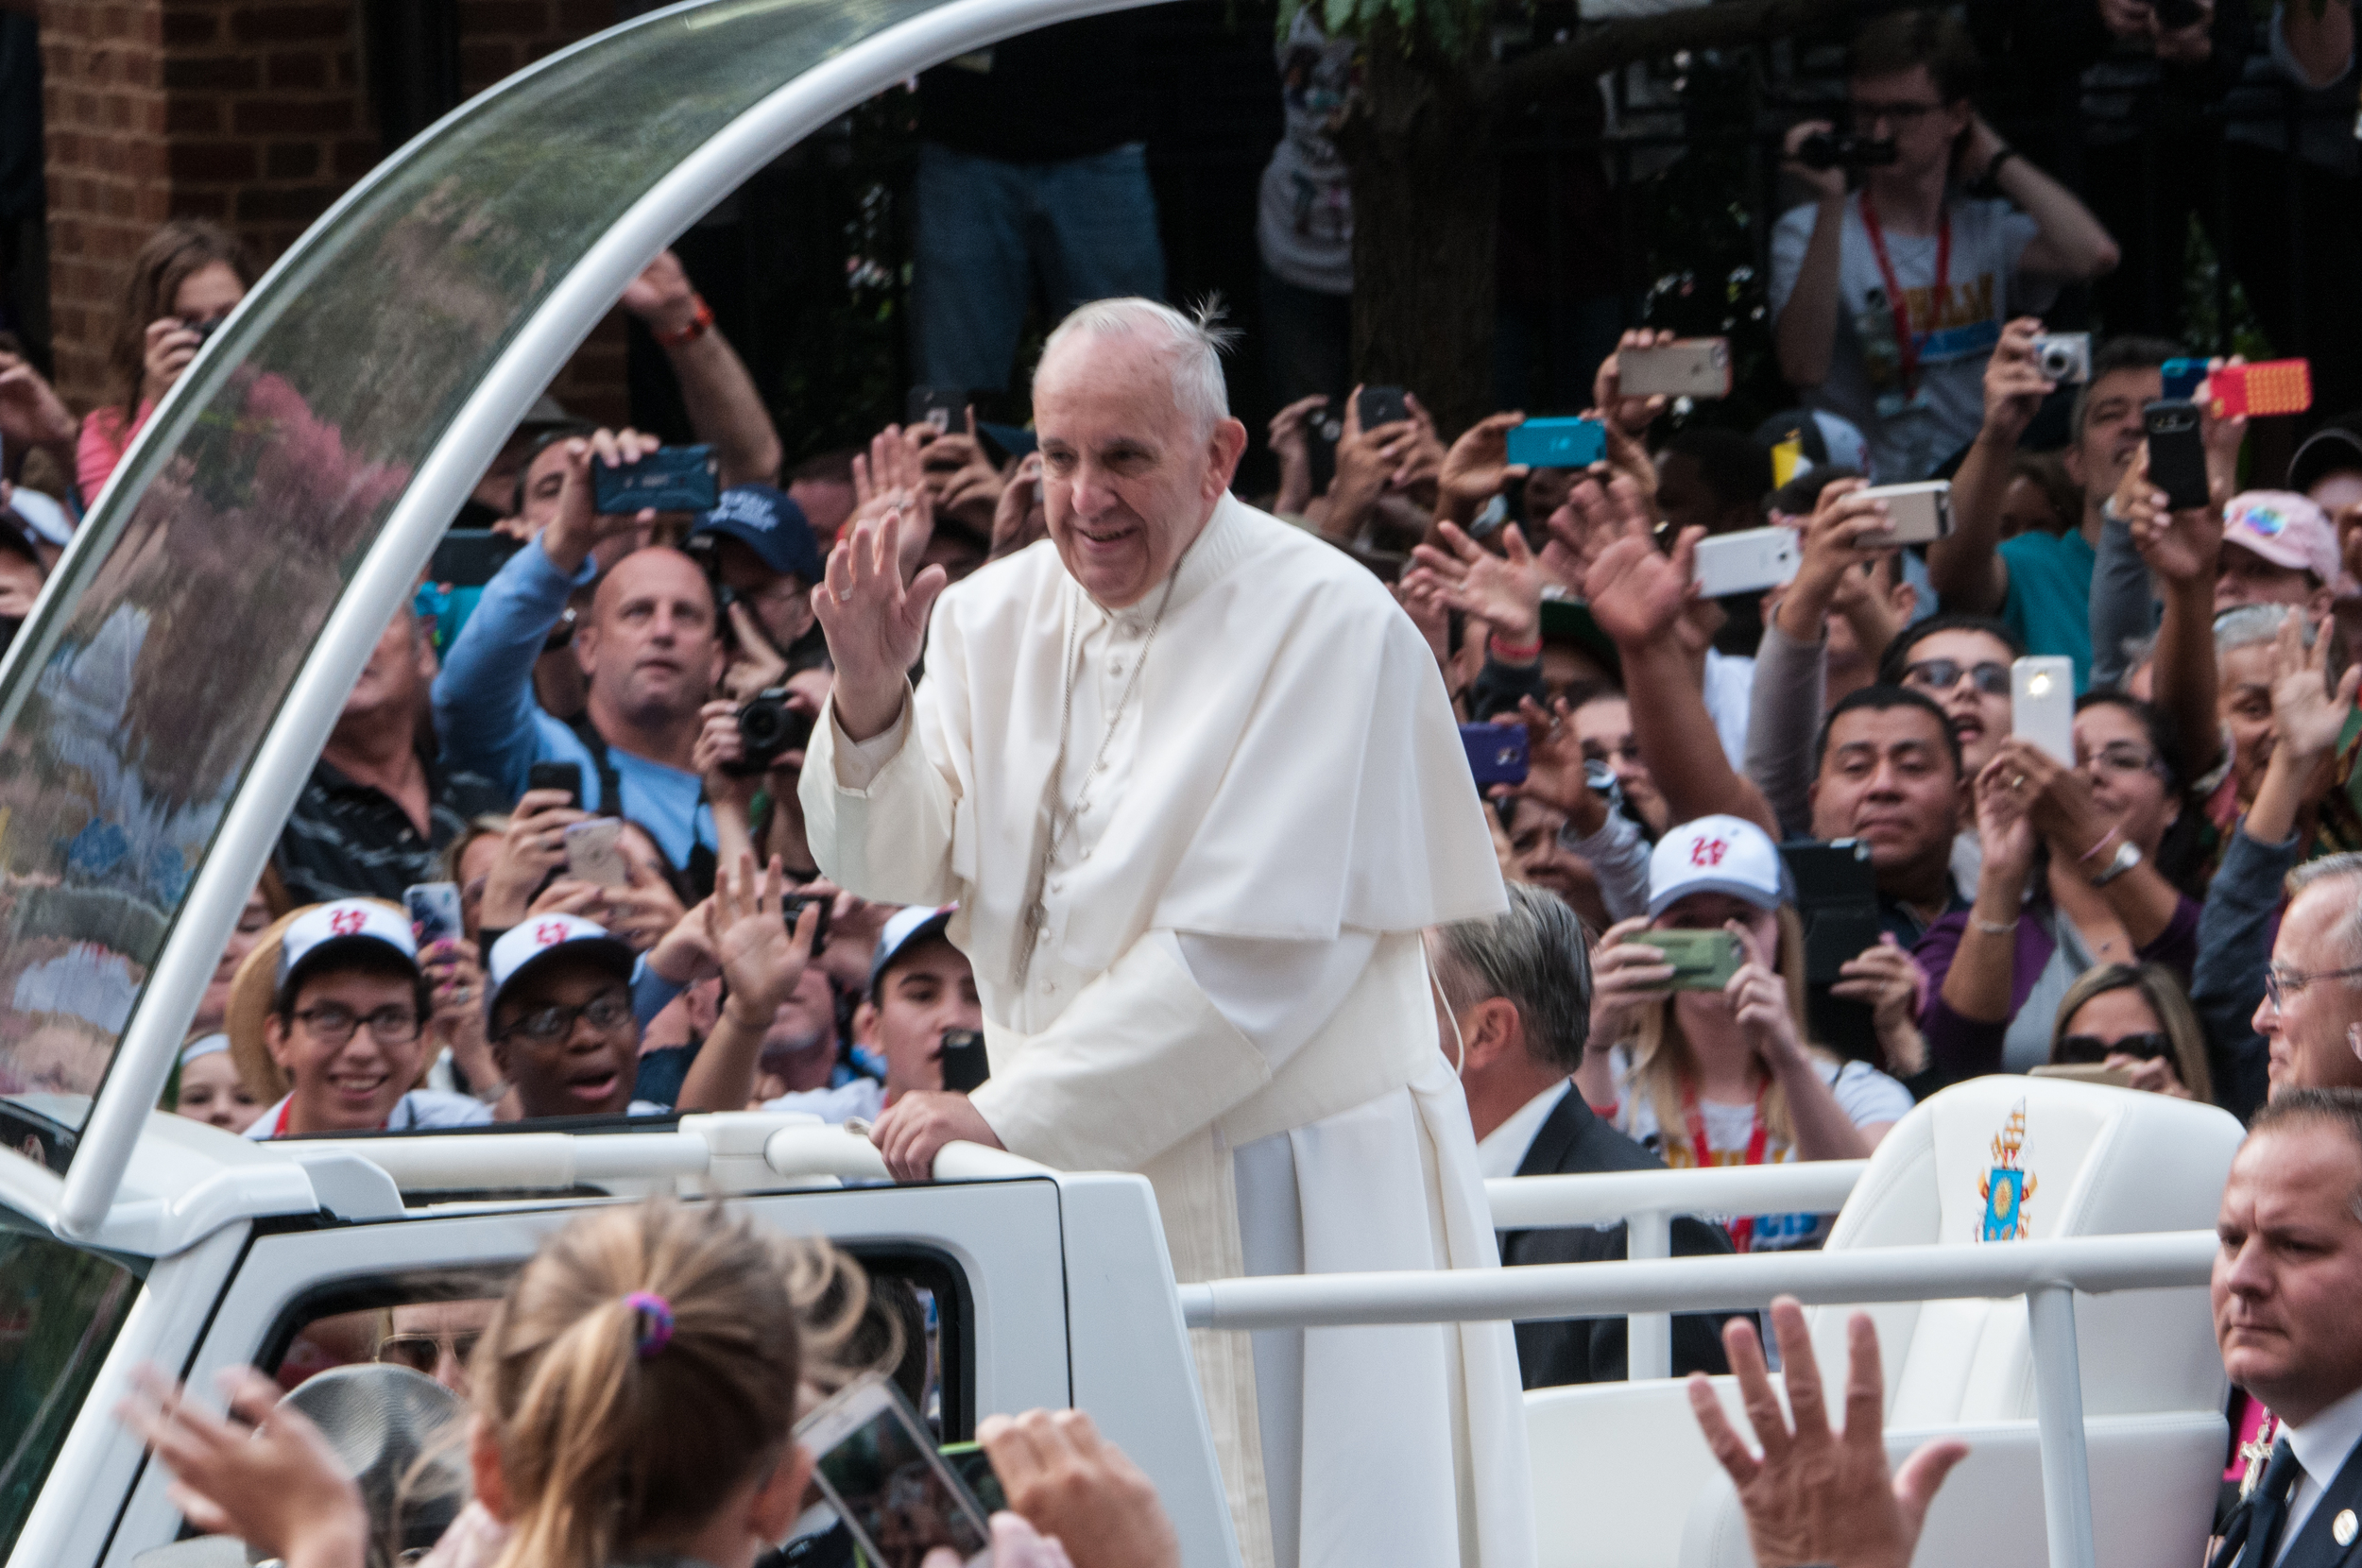 Pope Francis' visit to Philadelphia was a major logistics event for SEPTA and the region.